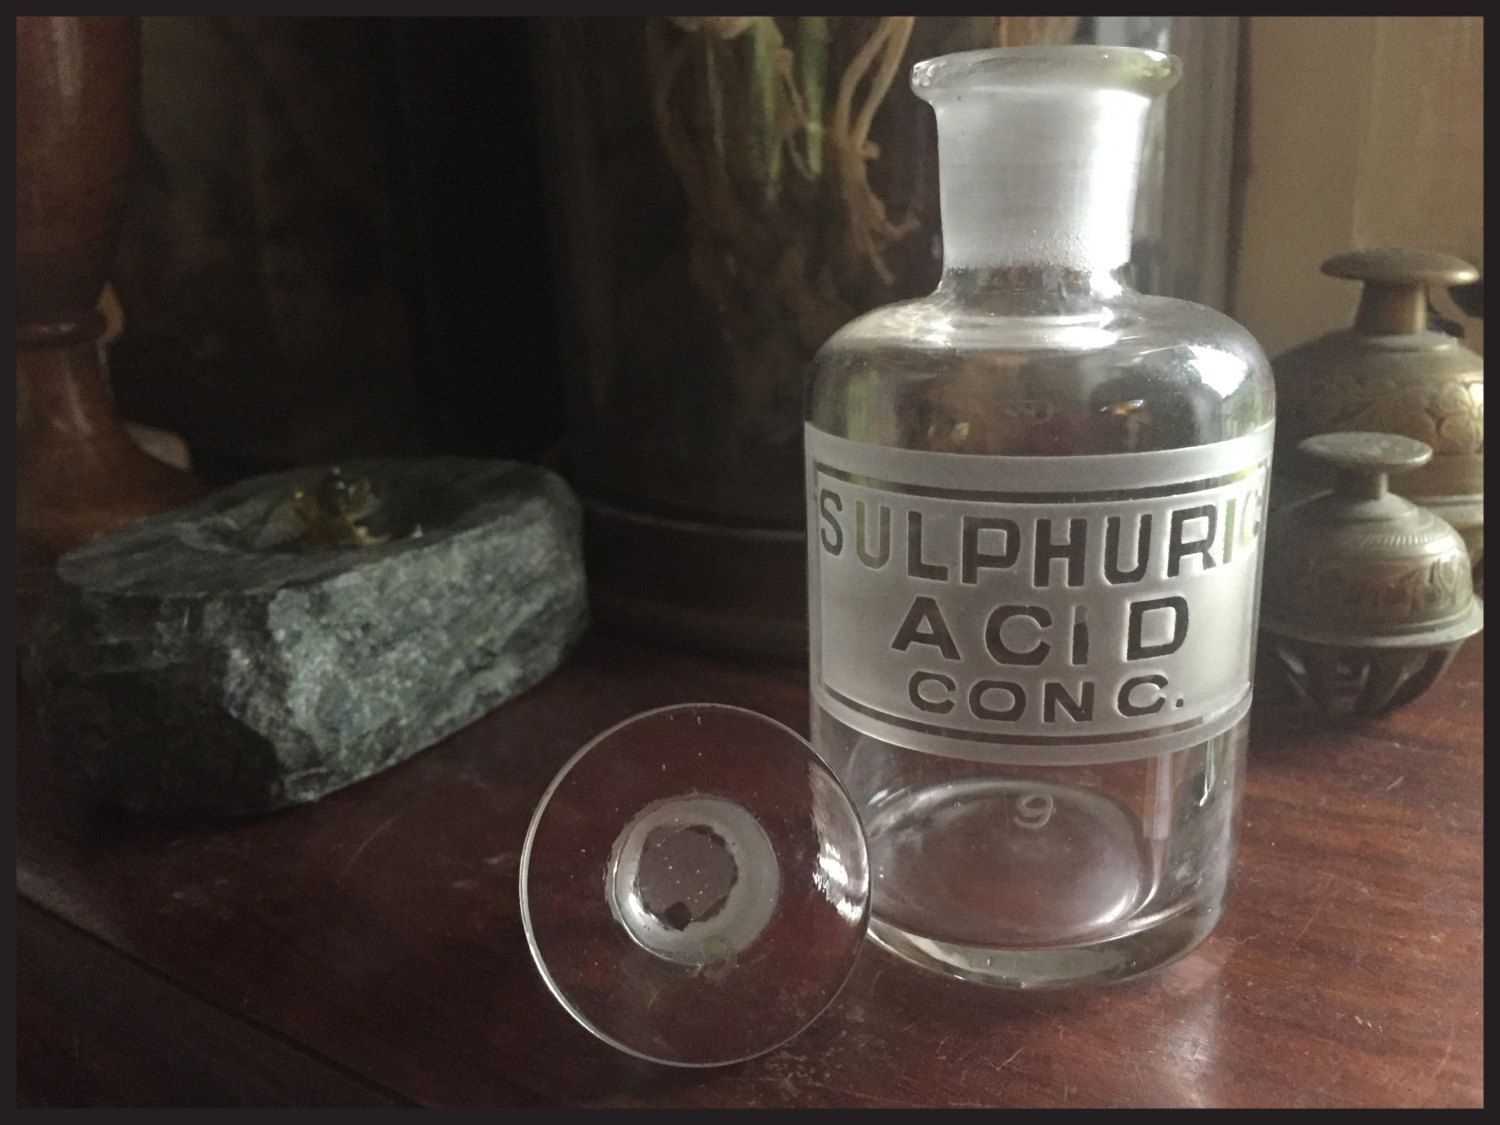 Stunning Etched Antique Chemist / Apothecary / Poison Bottle - Sulphuric Acid…